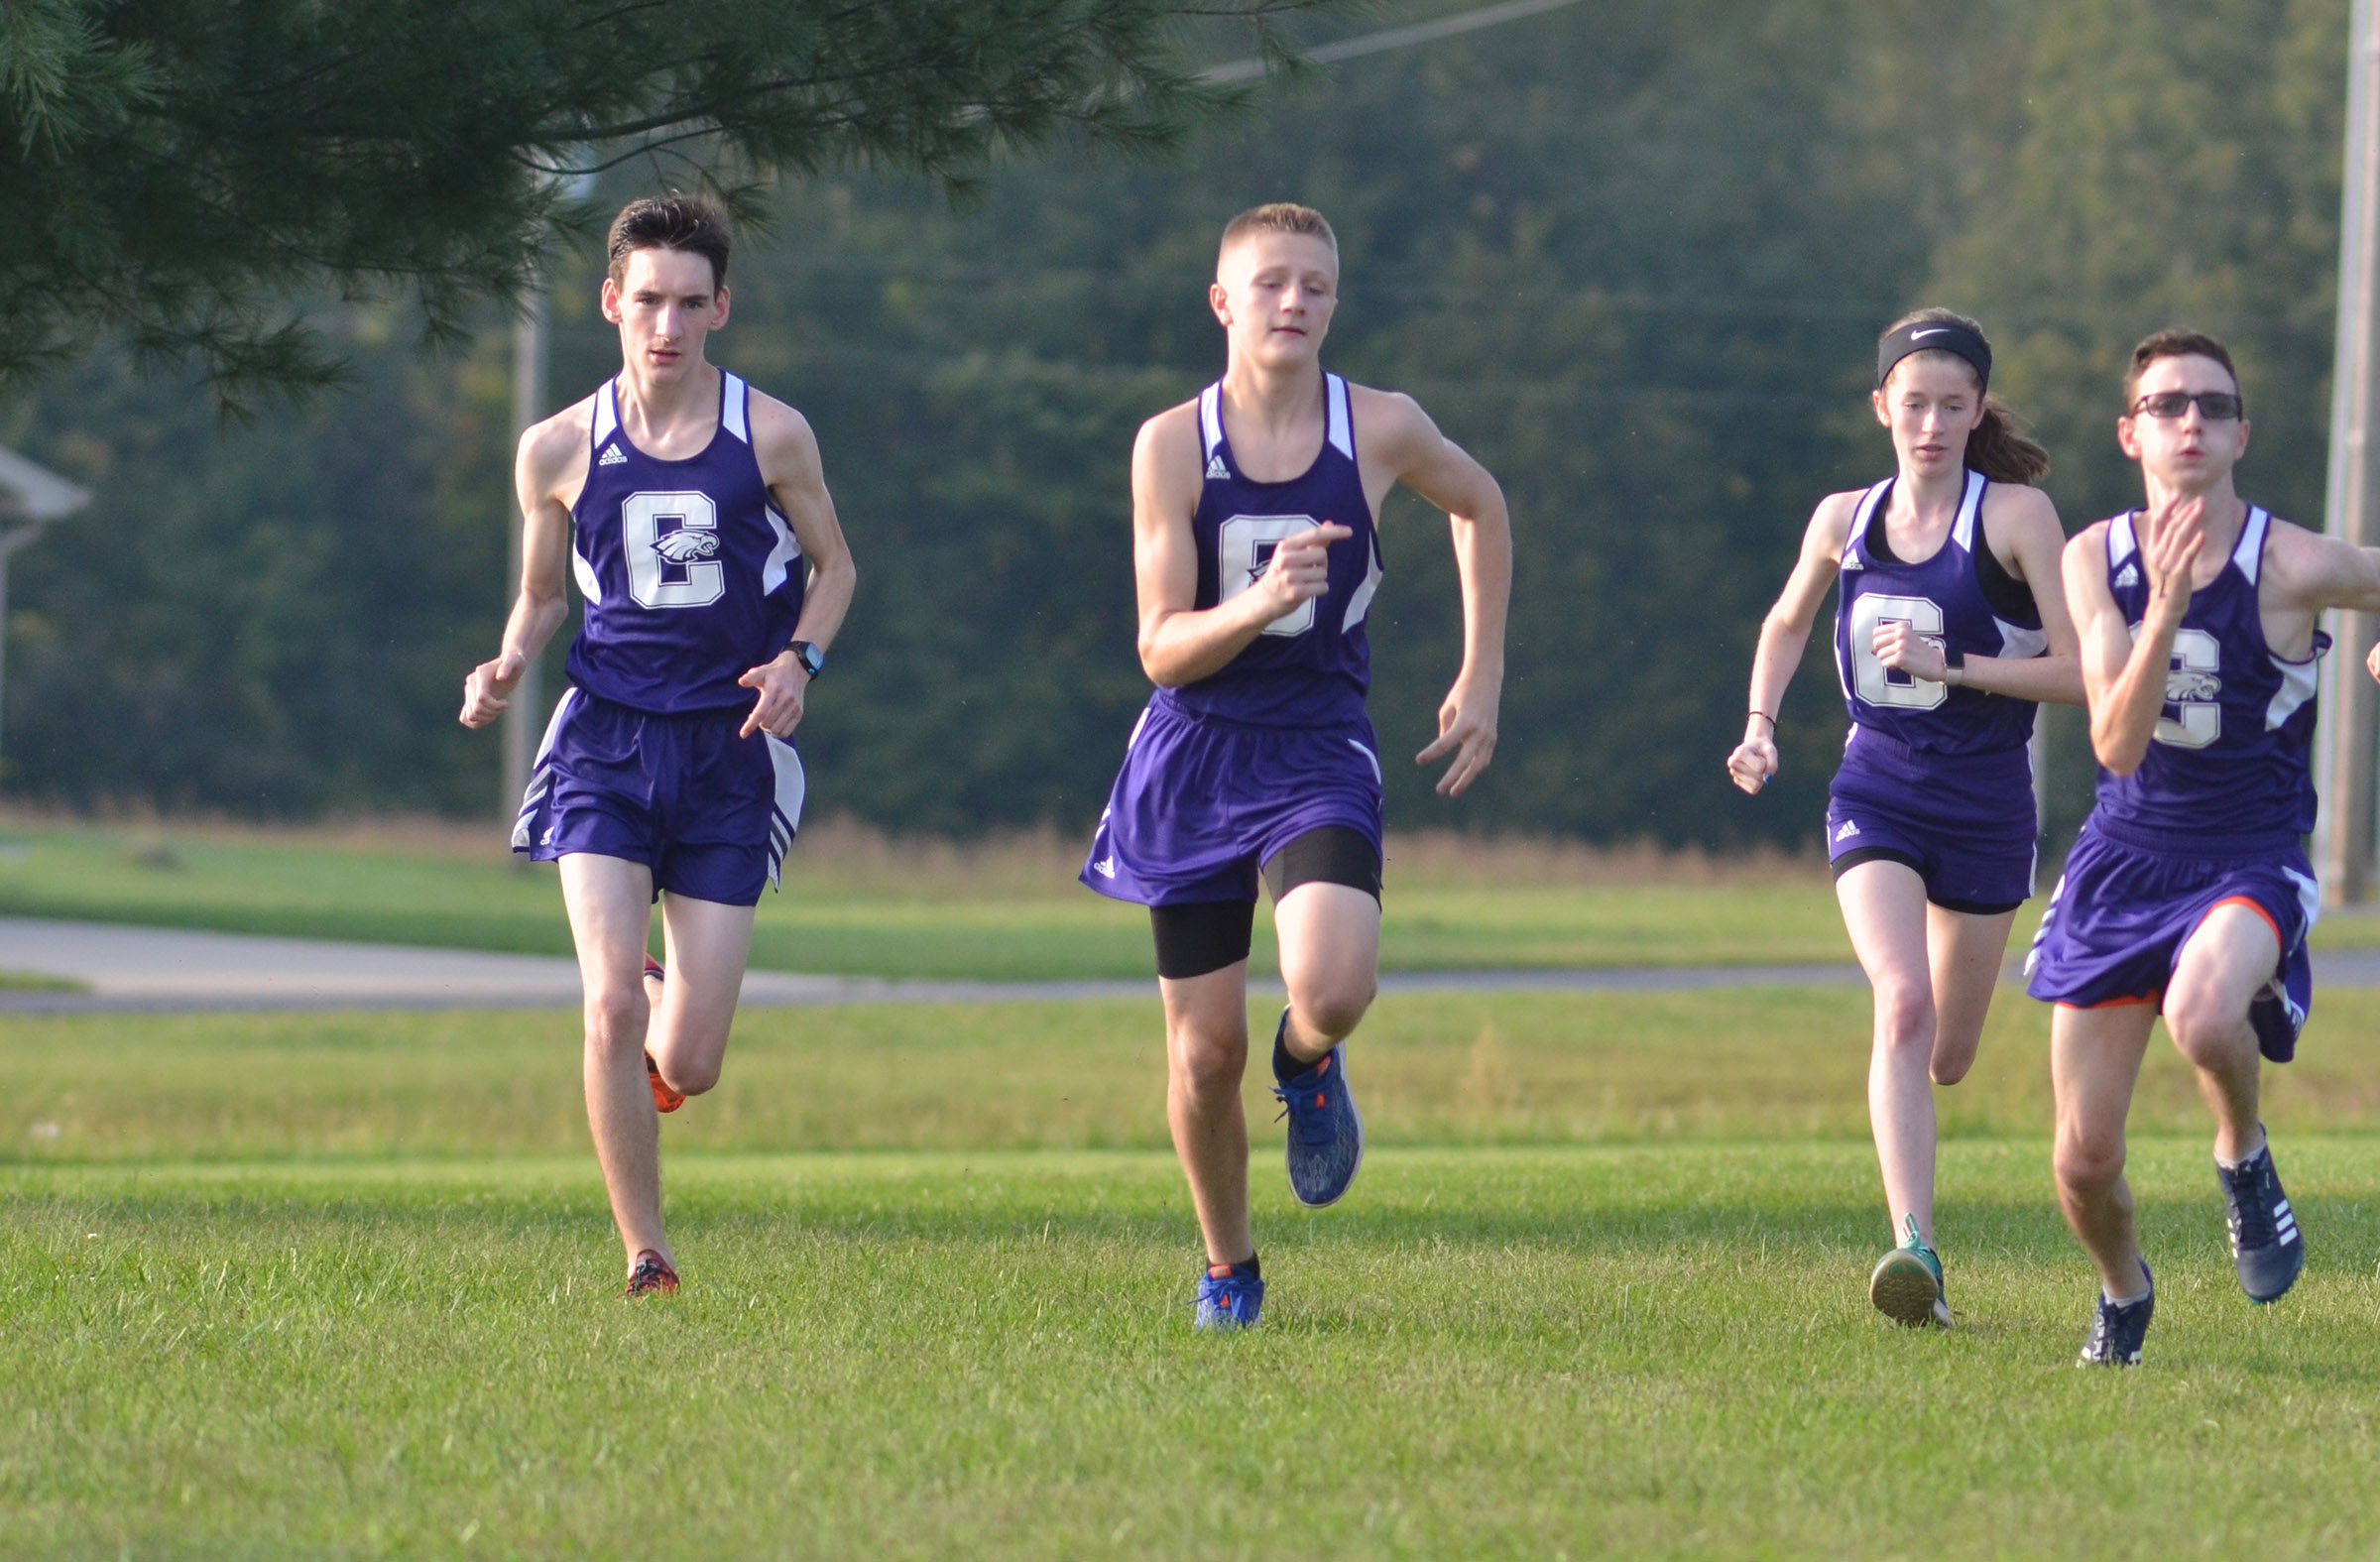 CHS cross country runners start their race.